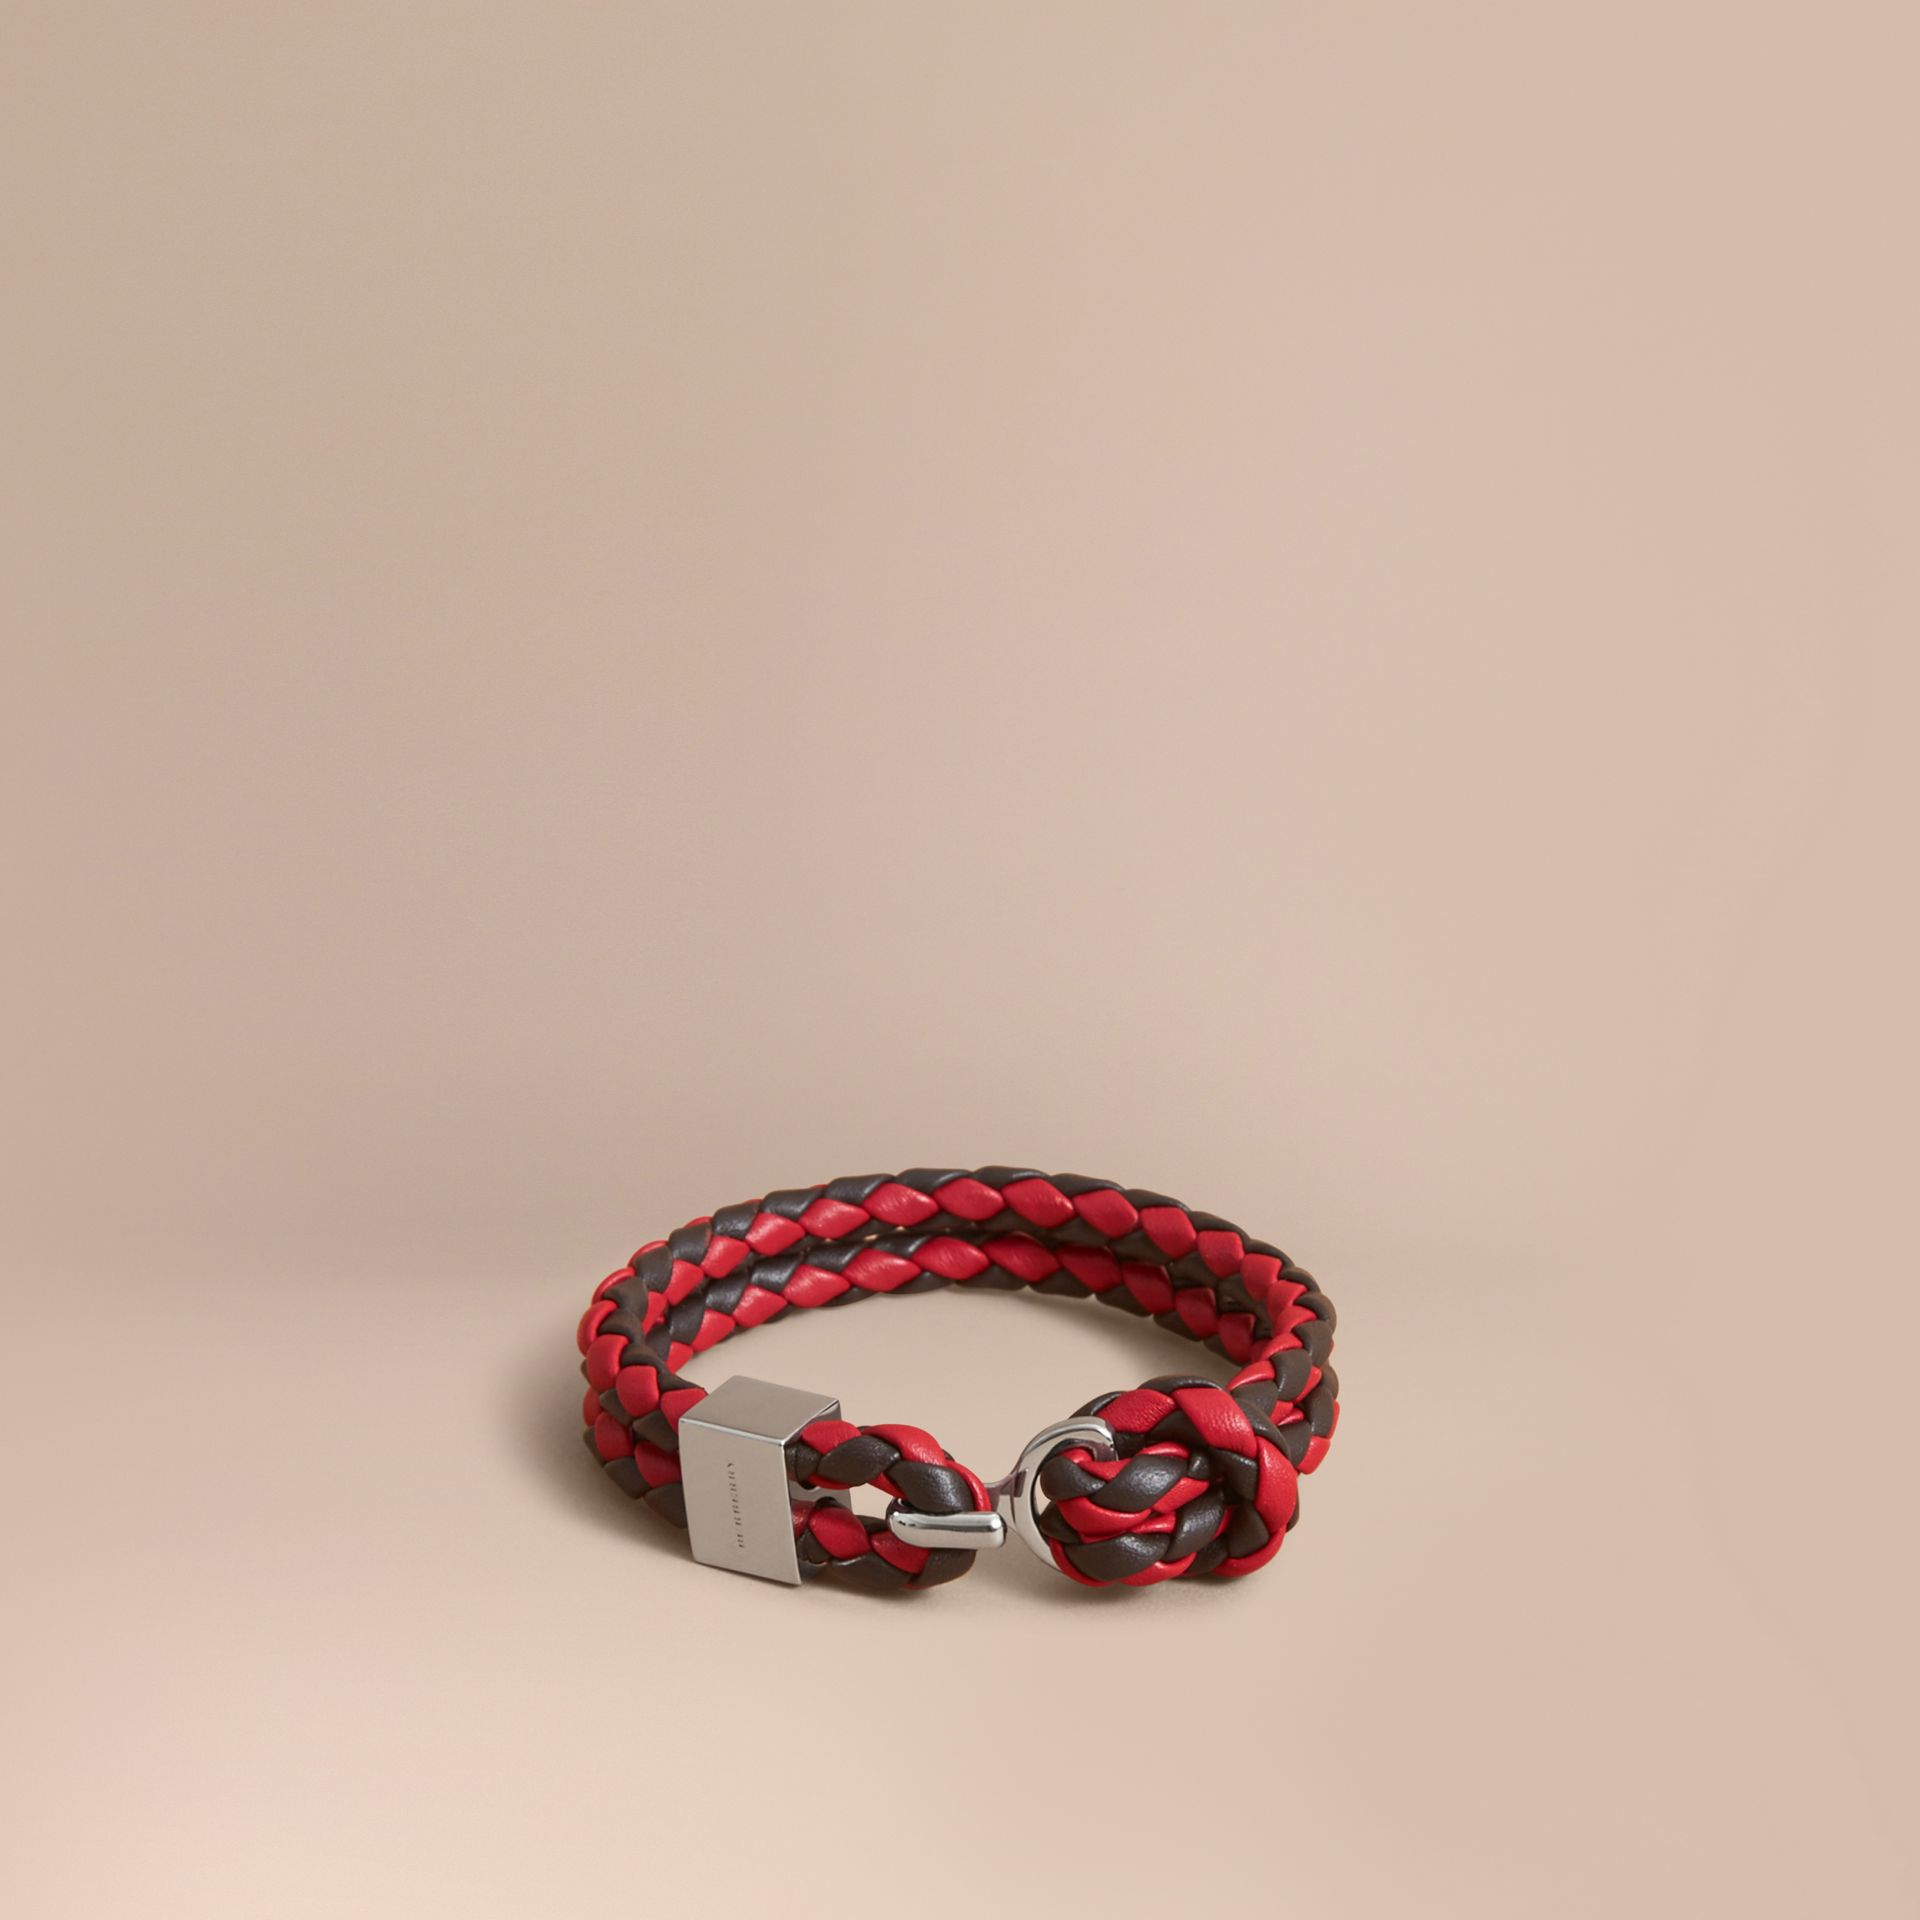 Two-tone Braided Leather Bracelet in Peppercorn/coral Red - Men | Burberry United Kingdom - gallery image 1